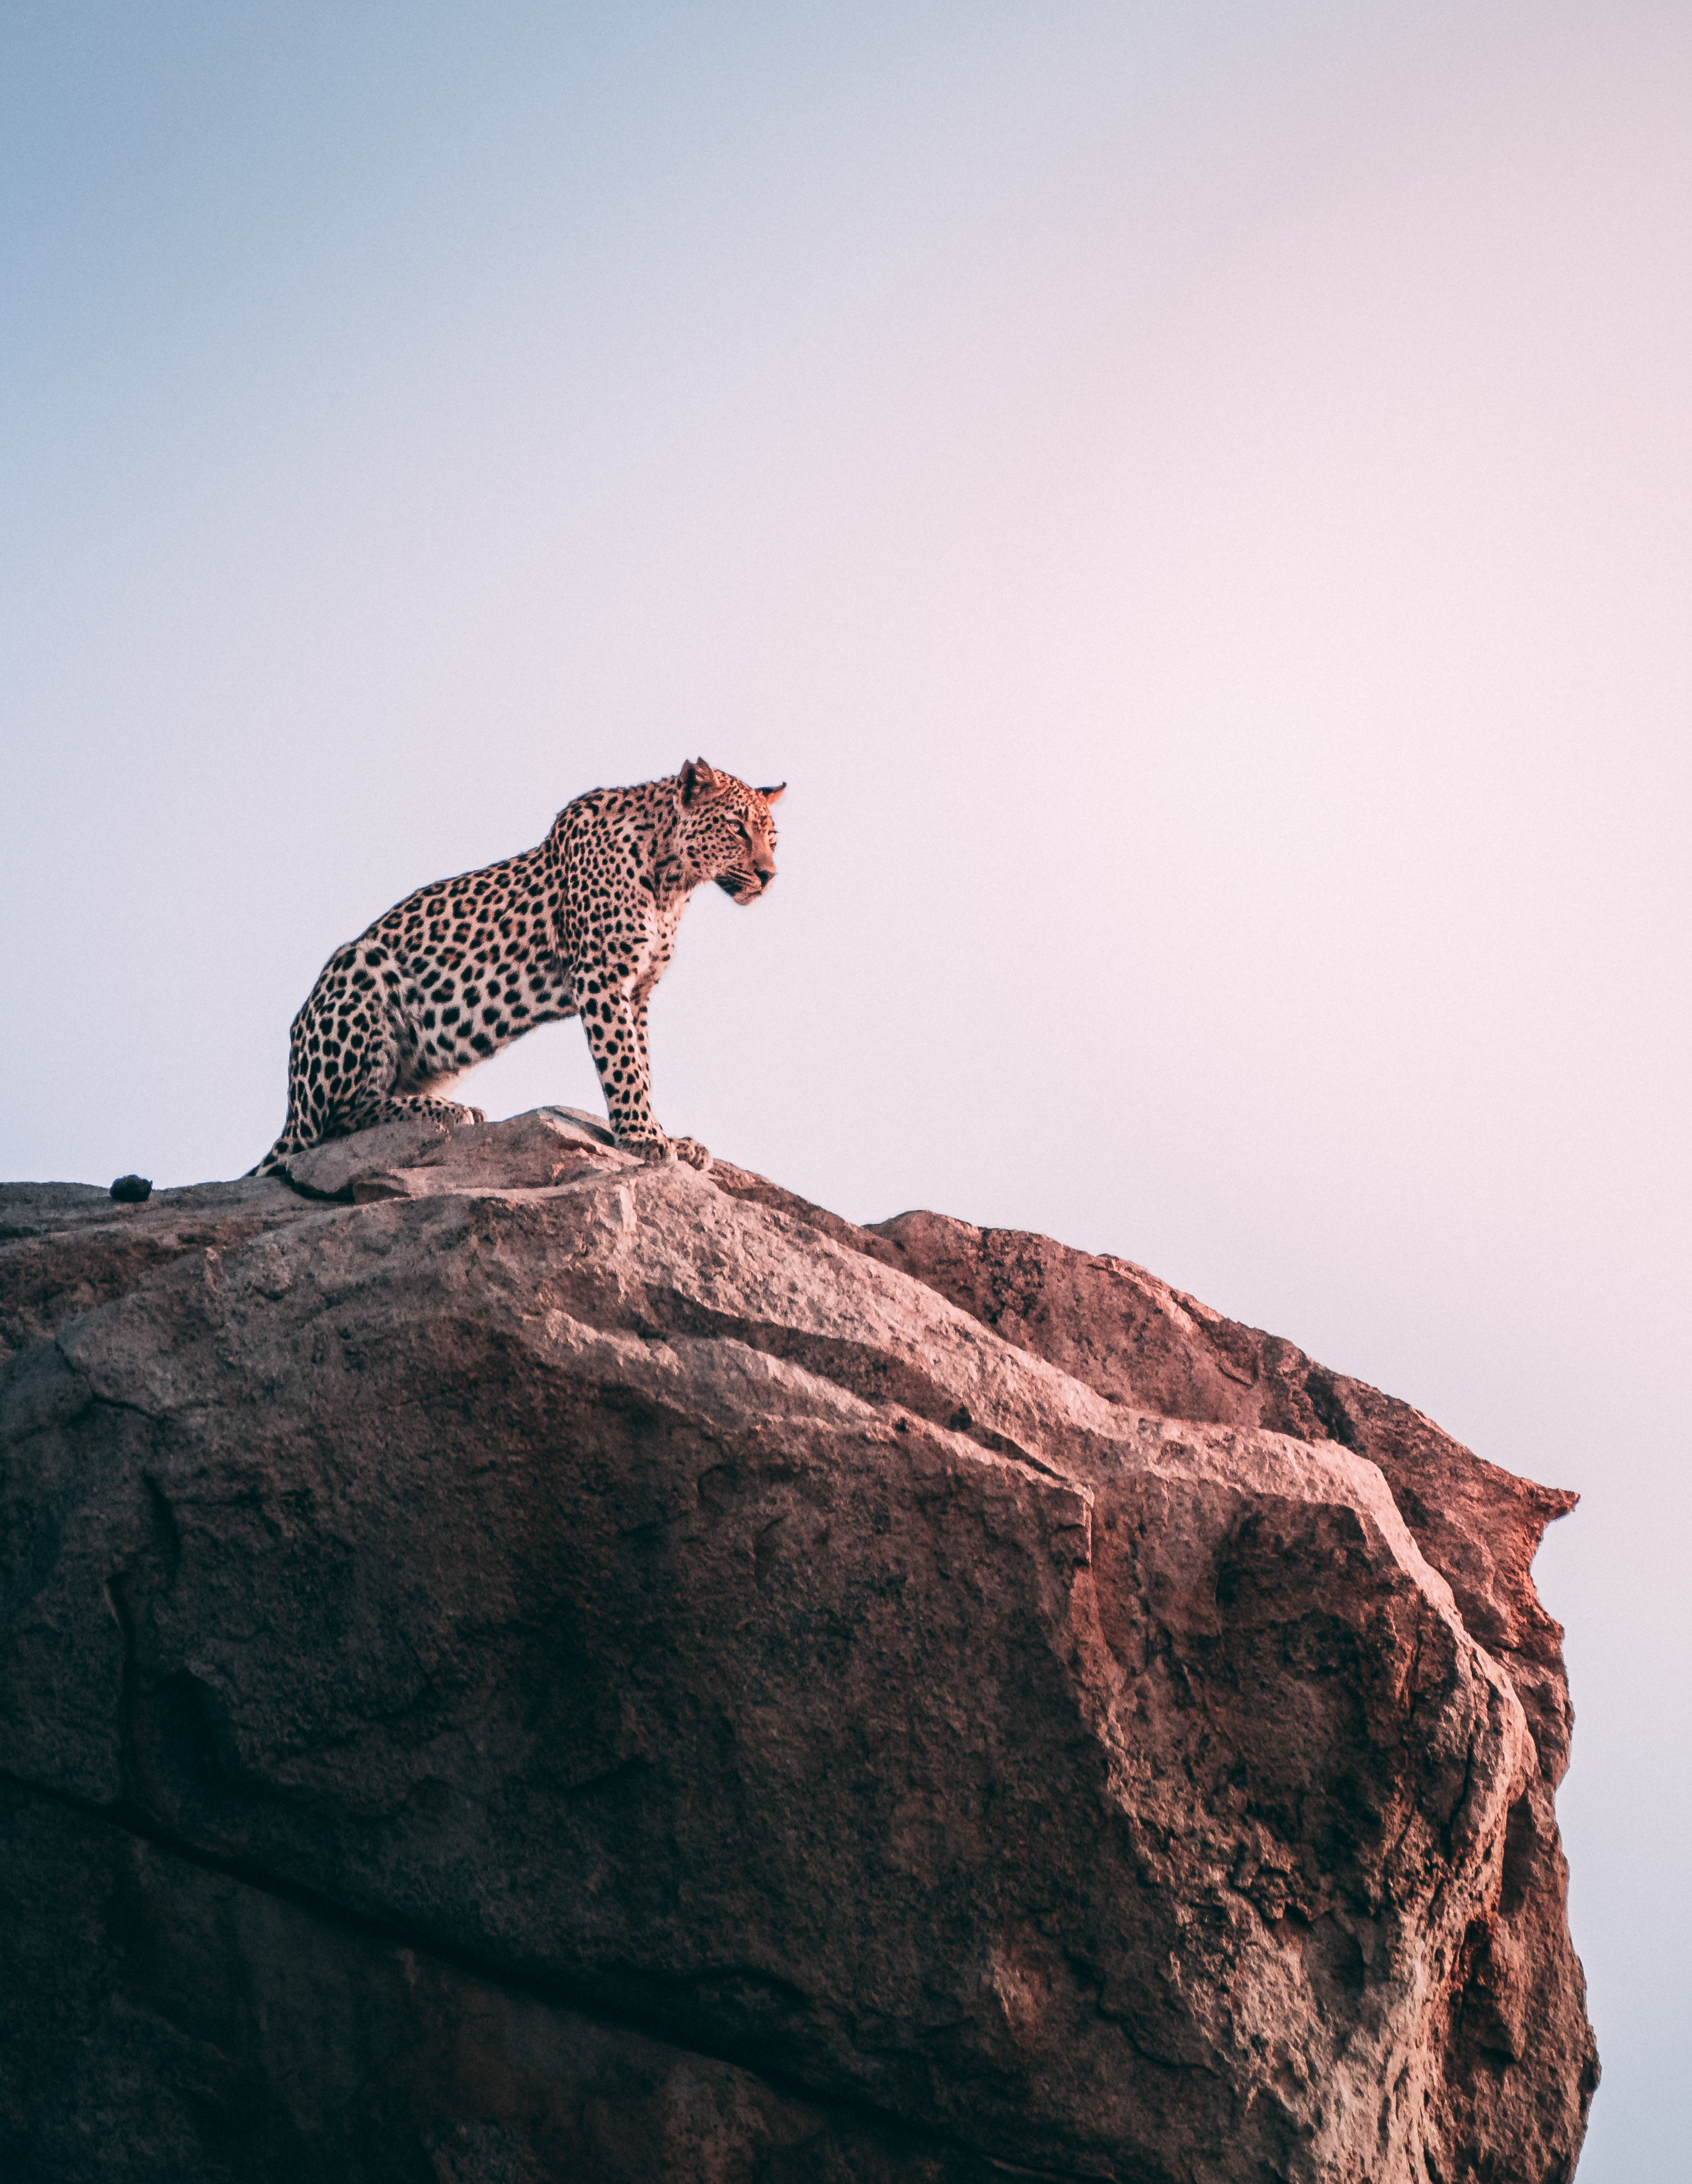 83660 download wallpaper Animals, Leopard, Rock, Predator, Big Cat screensavers and pictures for free